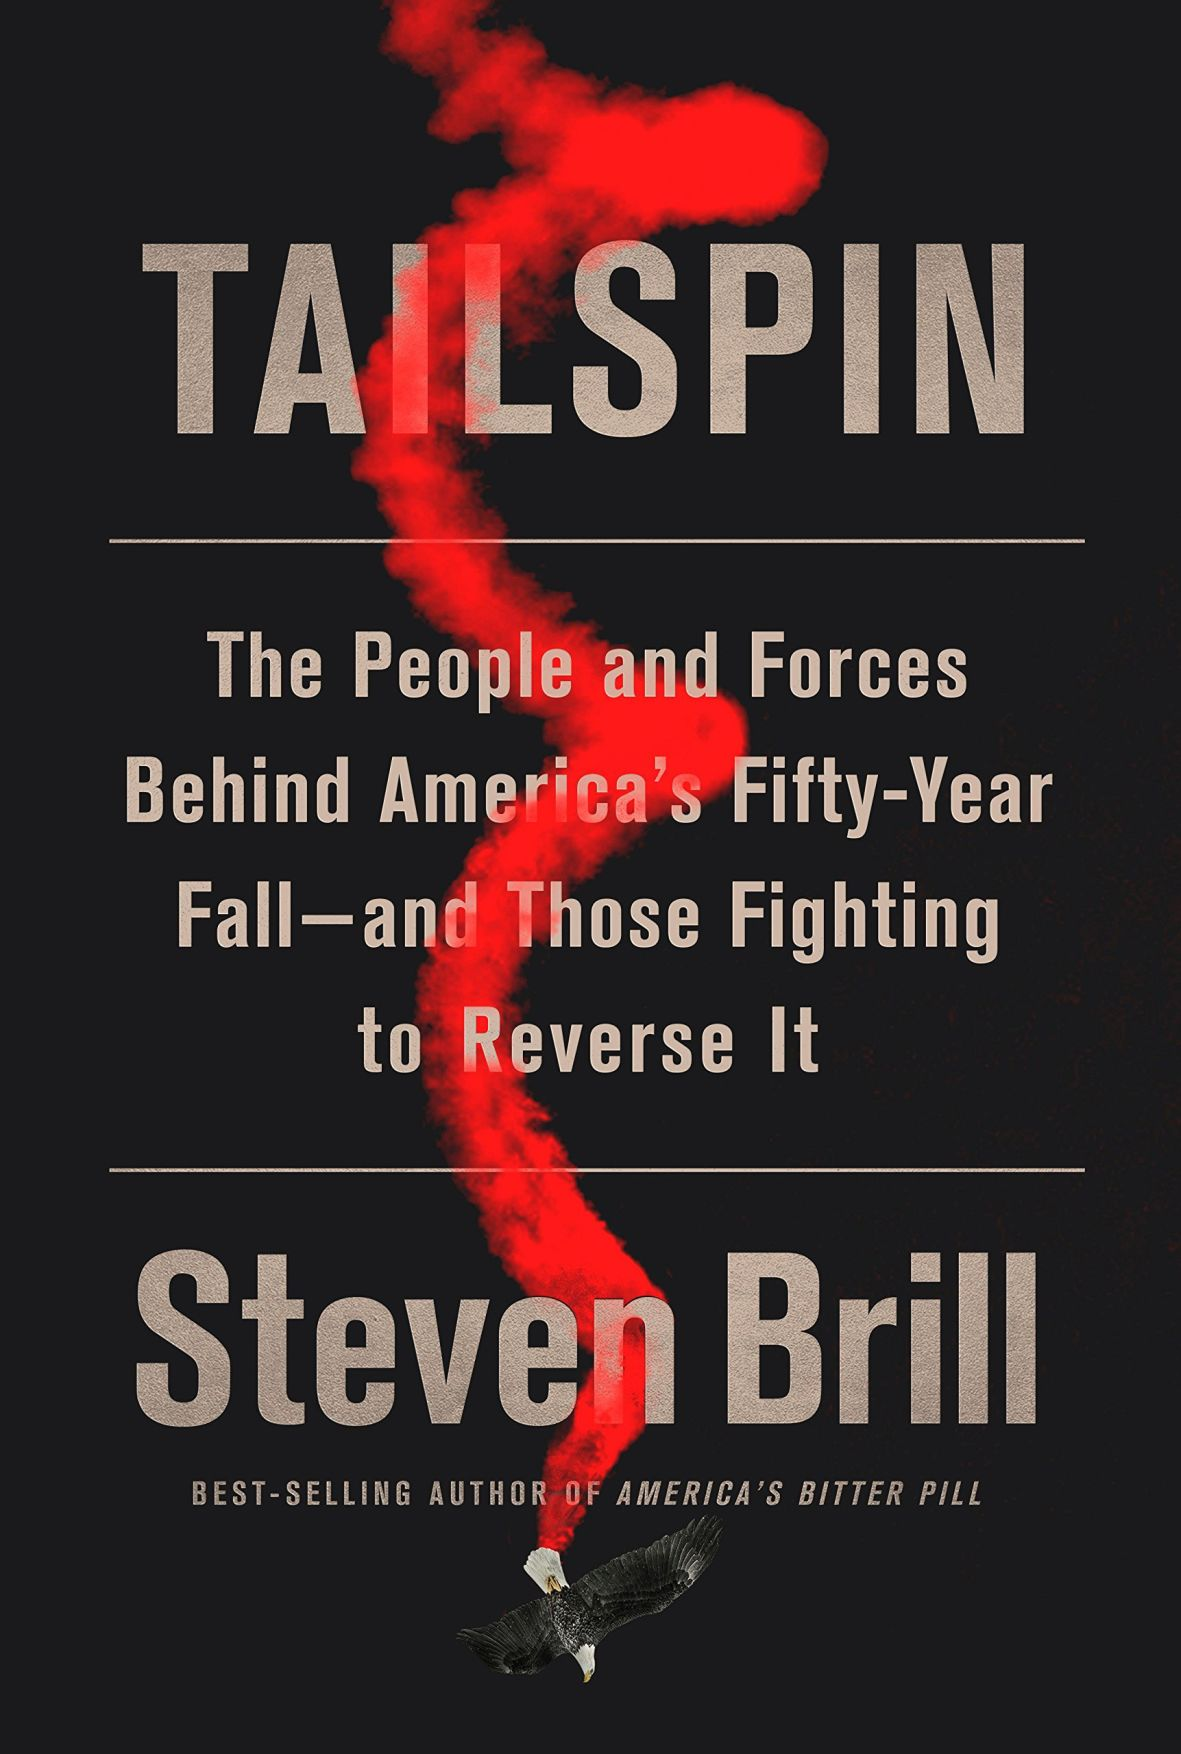 At the Library: Tailspin